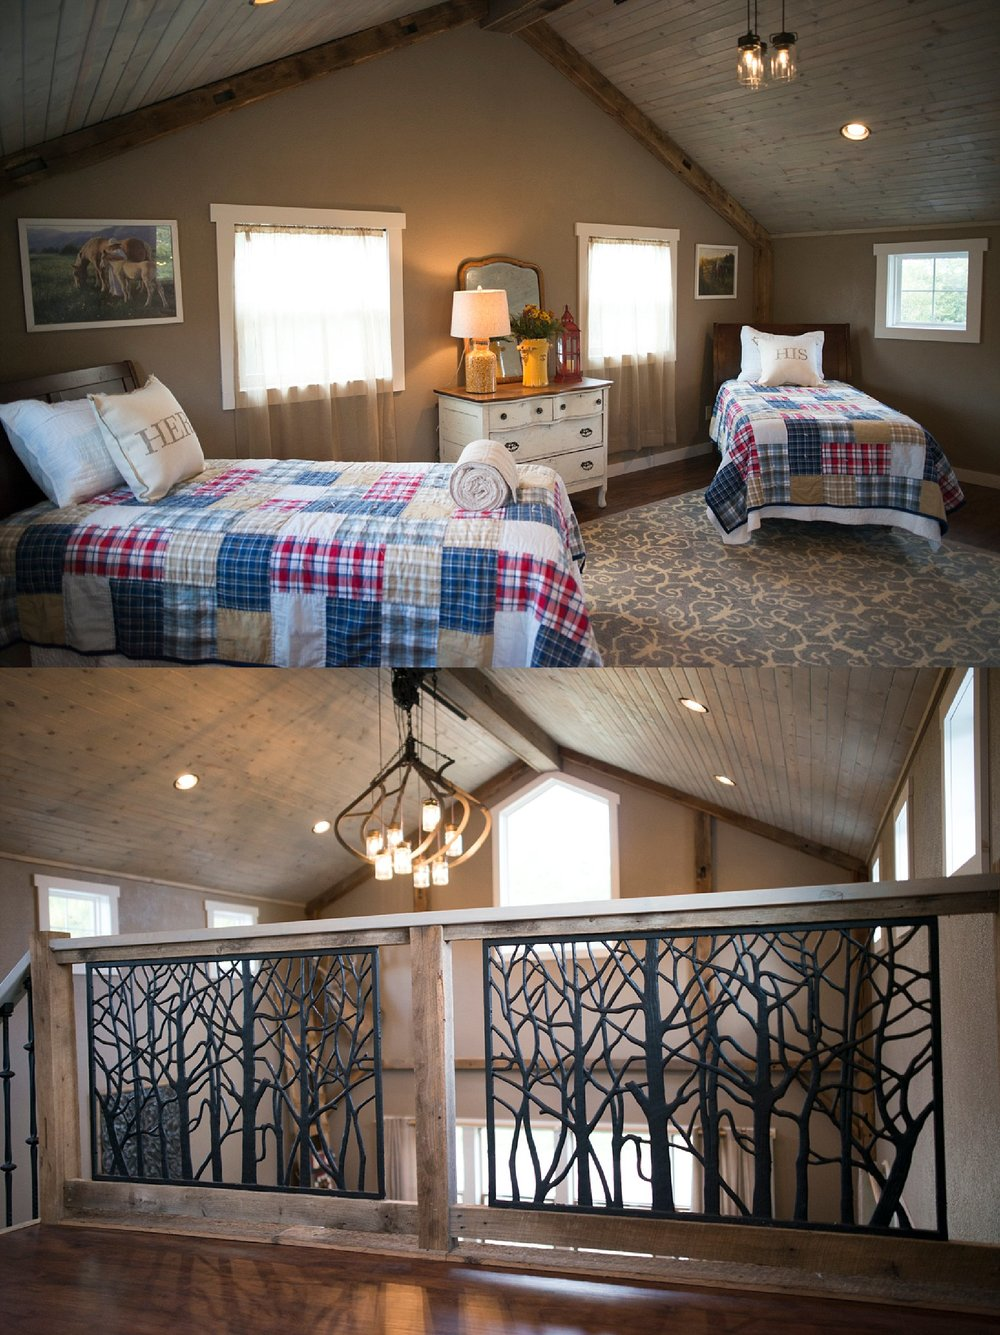 Top:  She's created the perfect spot for sleepovers in the loft.  Bottom:  The intricate iron stair railing came from Menards and that's her prized hay hook light in the background.